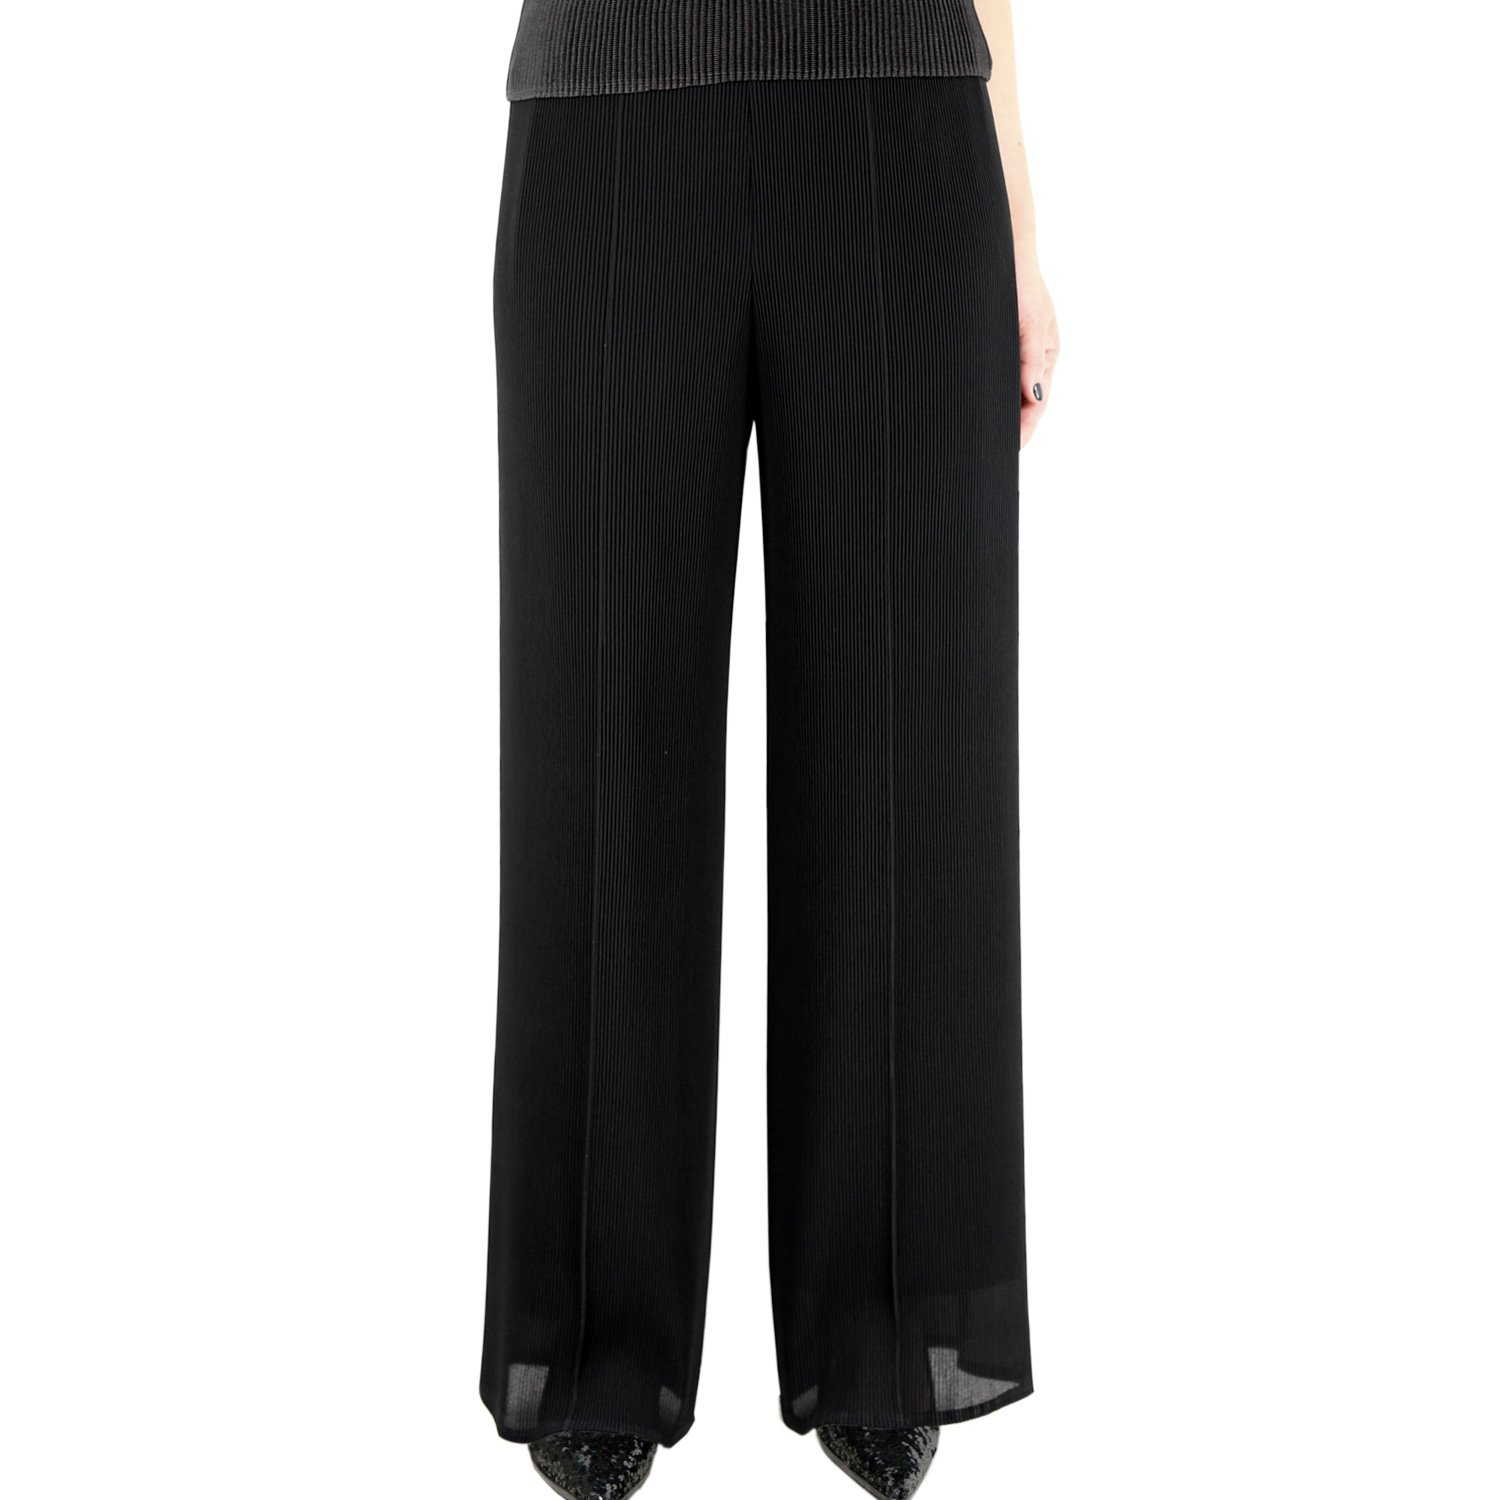 SPECCHIO PLEATS Women's Pleated Urban Wide Leg Pants Women Spring and Summer One Size Black